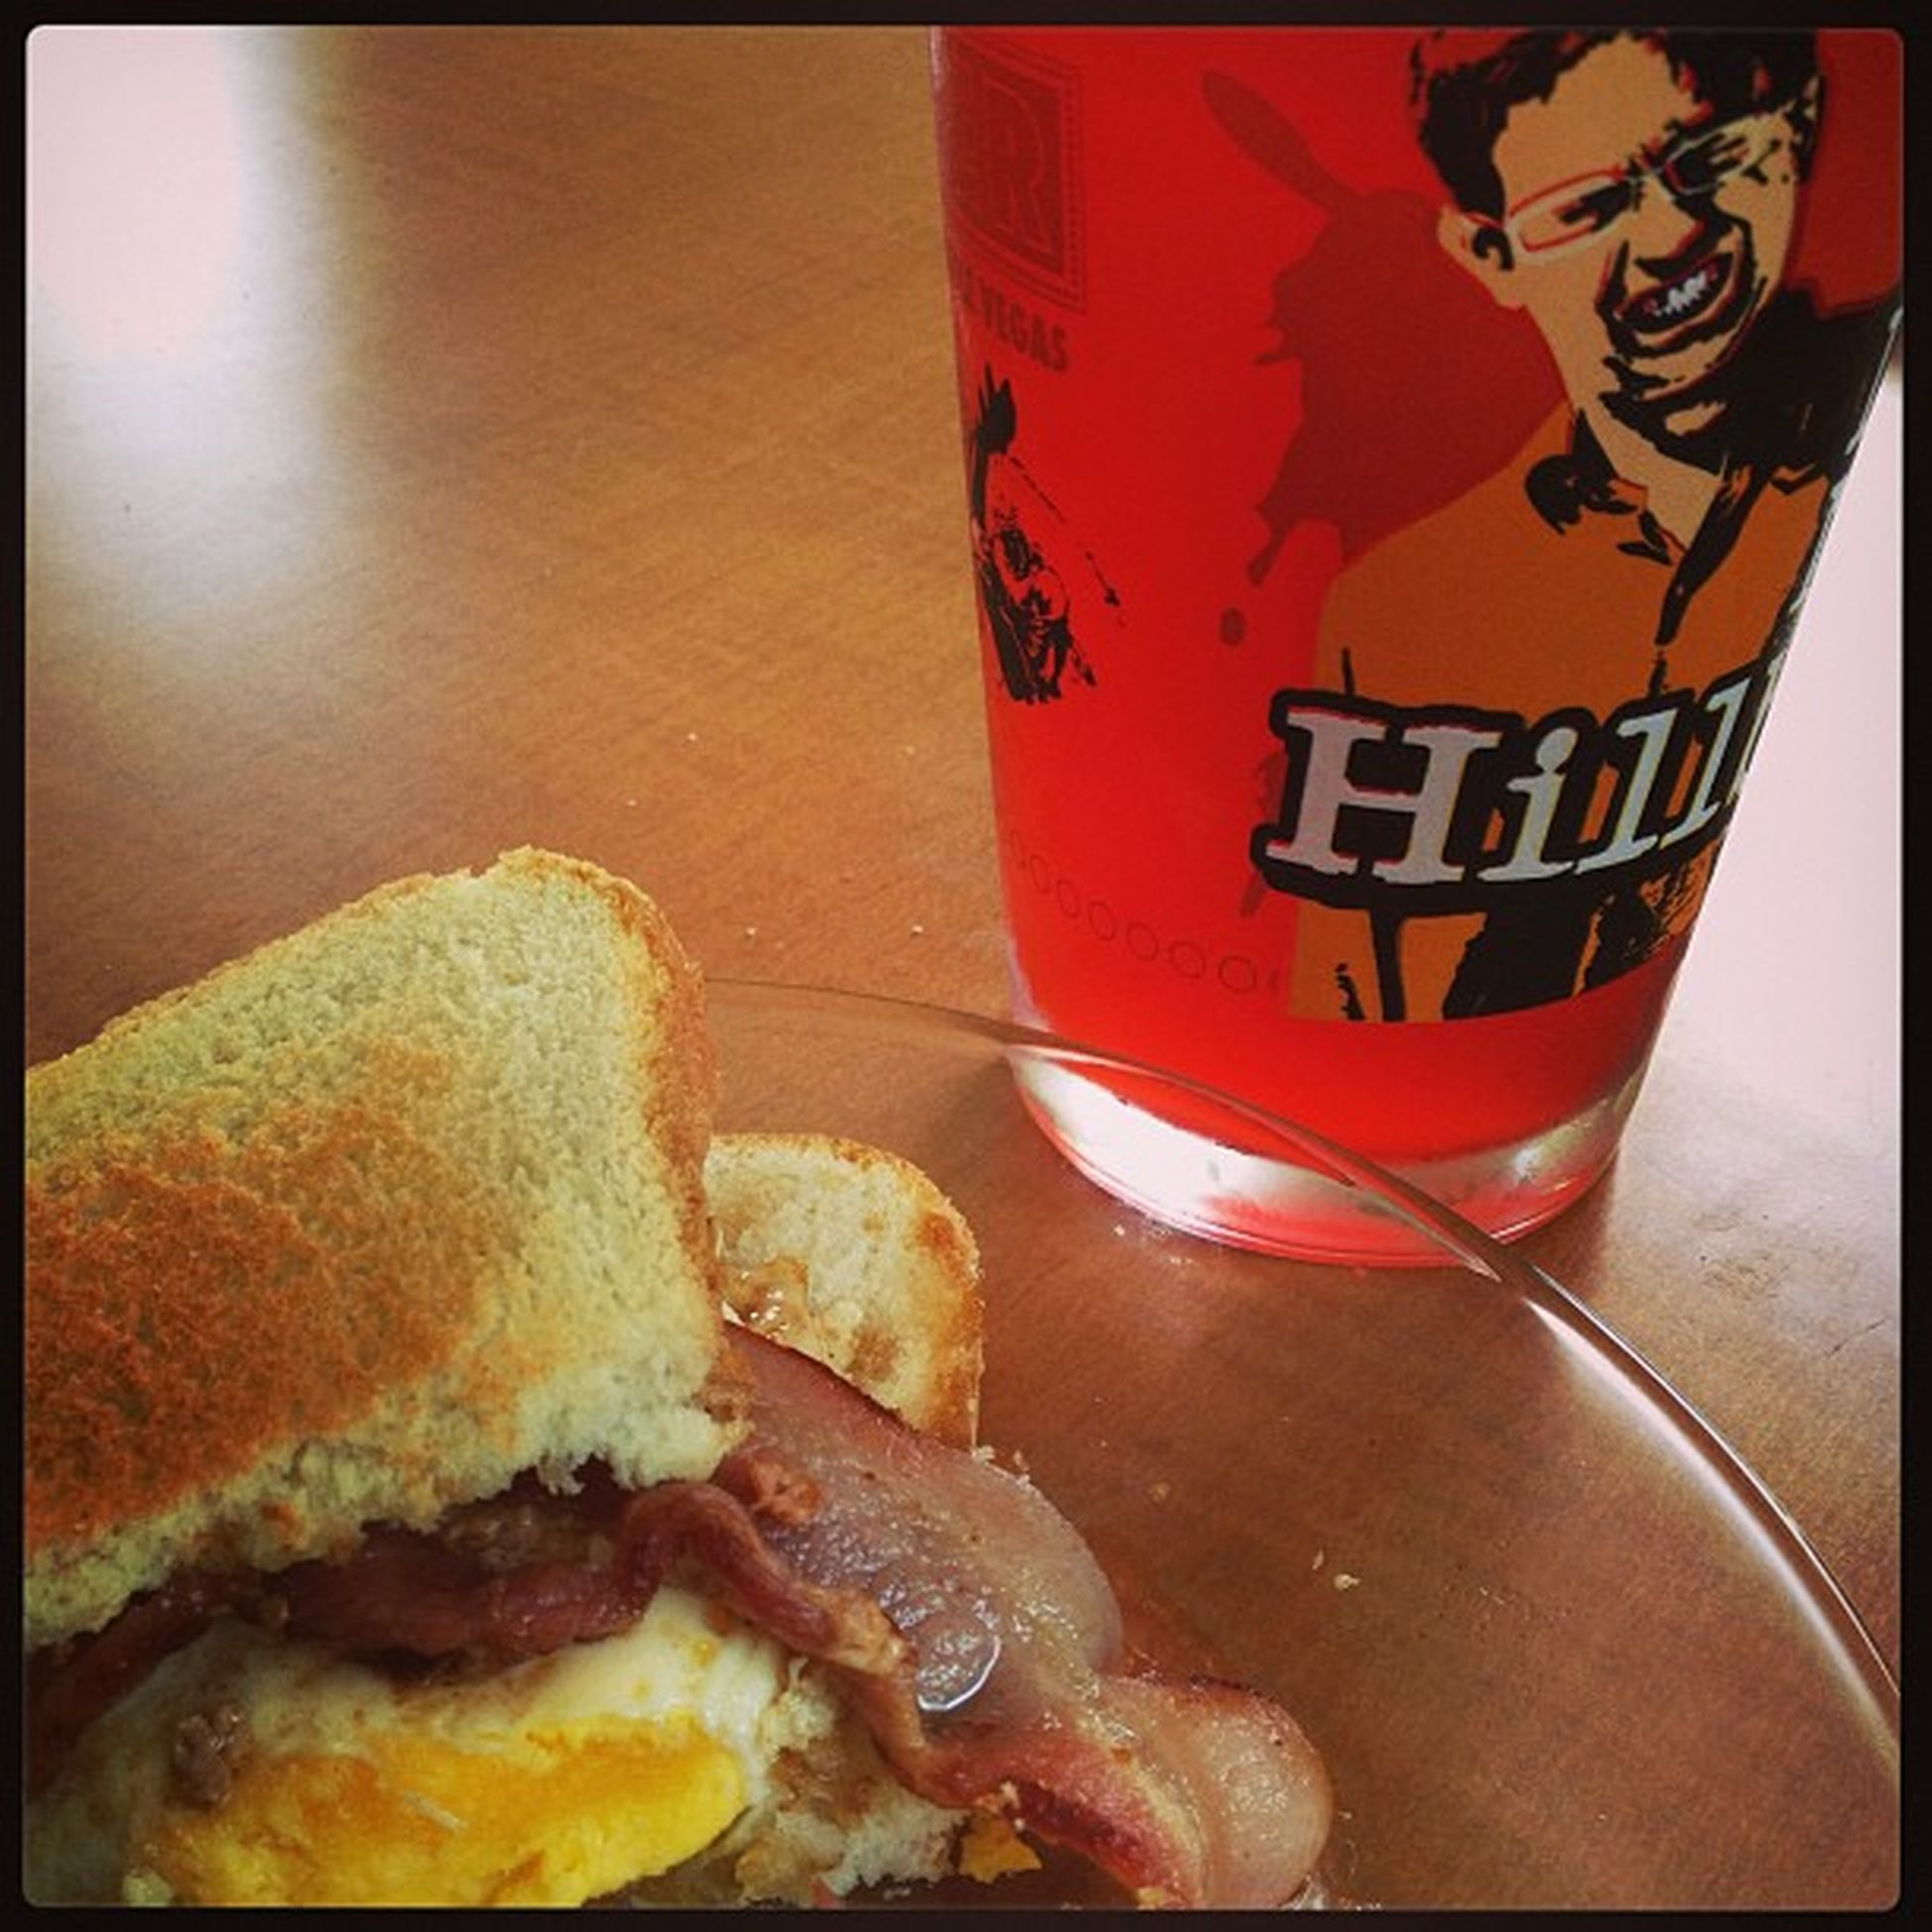 Baconeggsandwhich Fruitpunch Koolaid Ohhyeaeah selfmade delicious